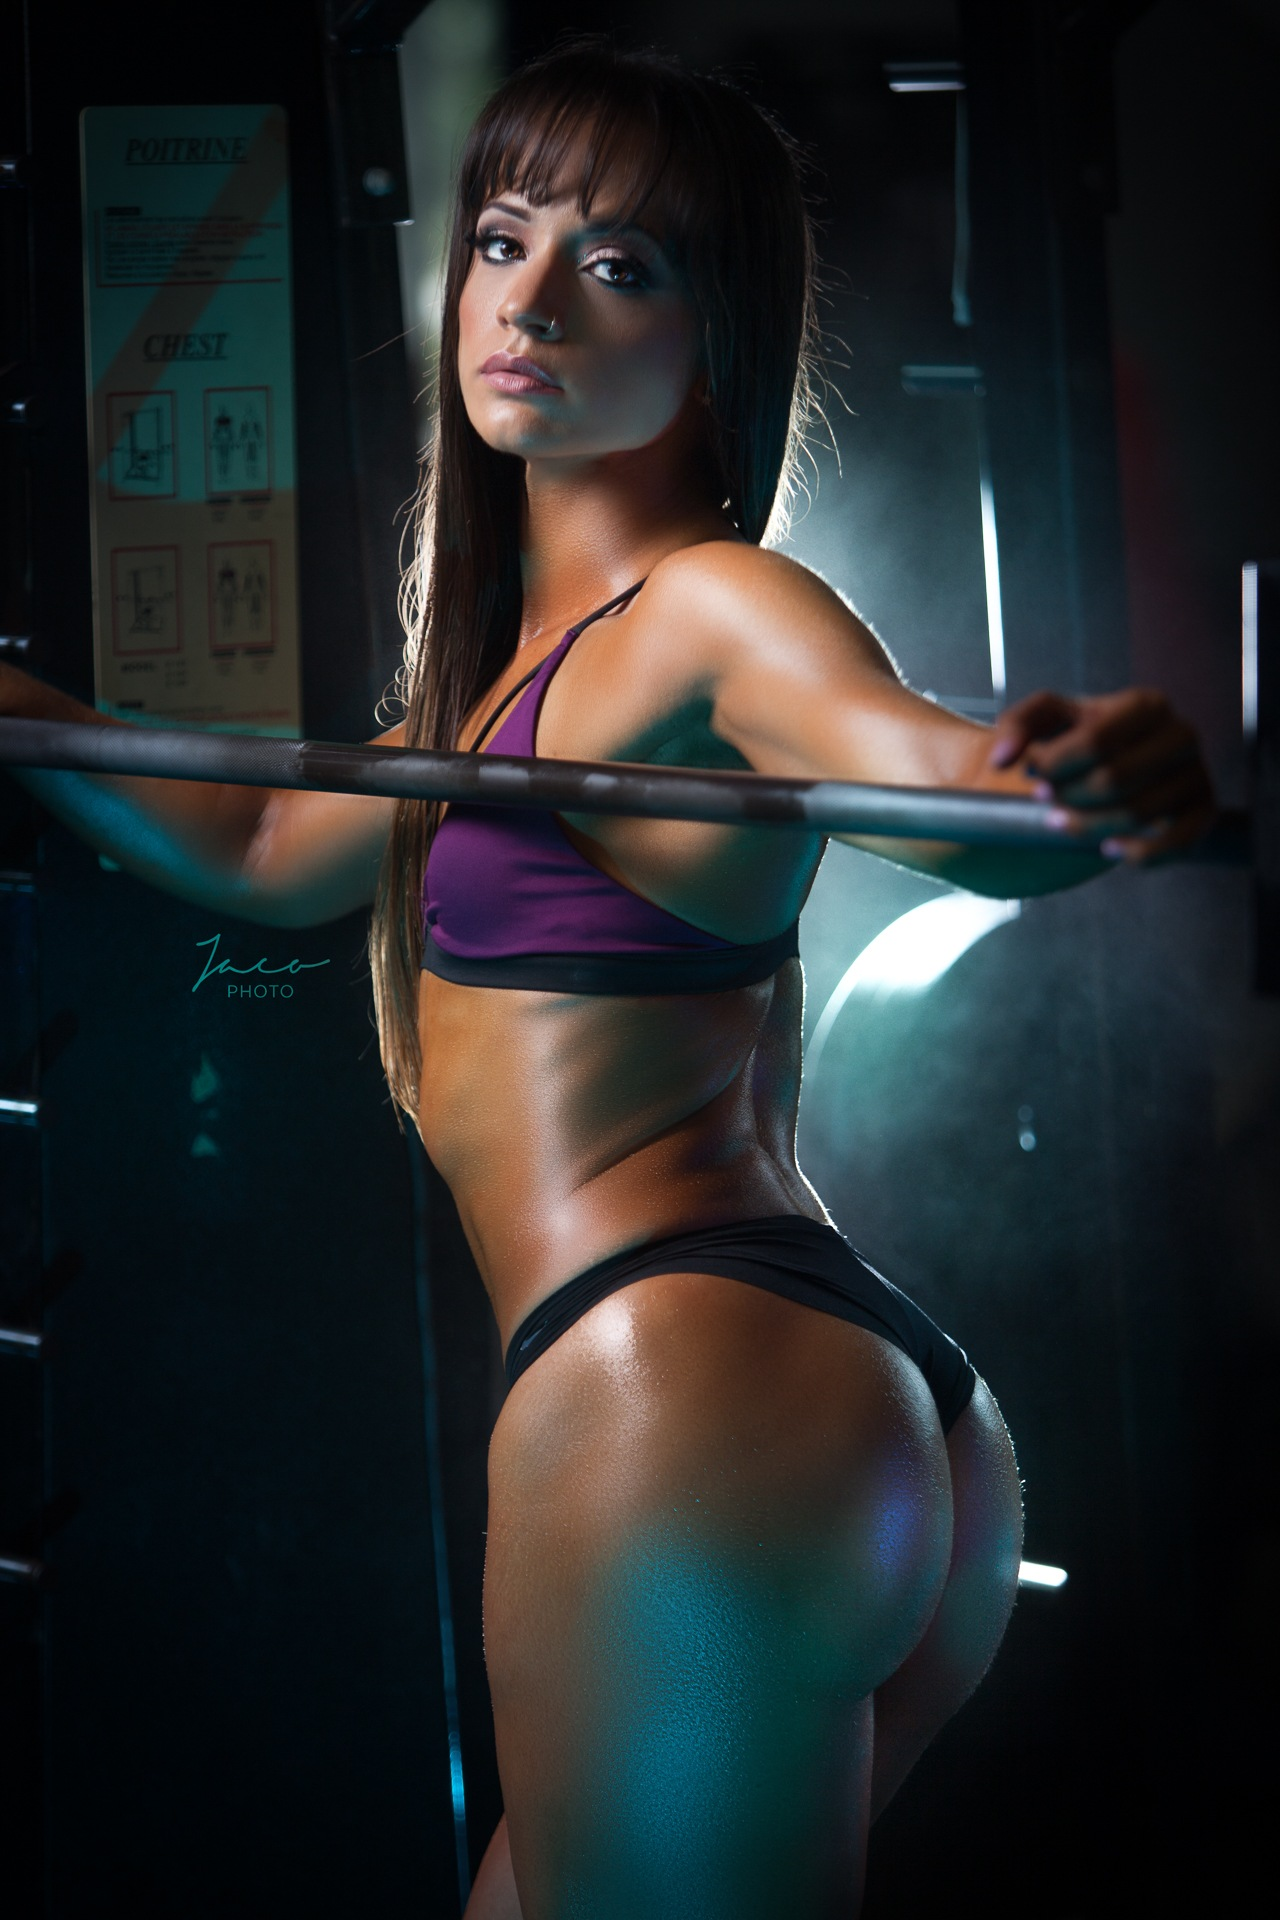 Cari at gym by Tony Pavone